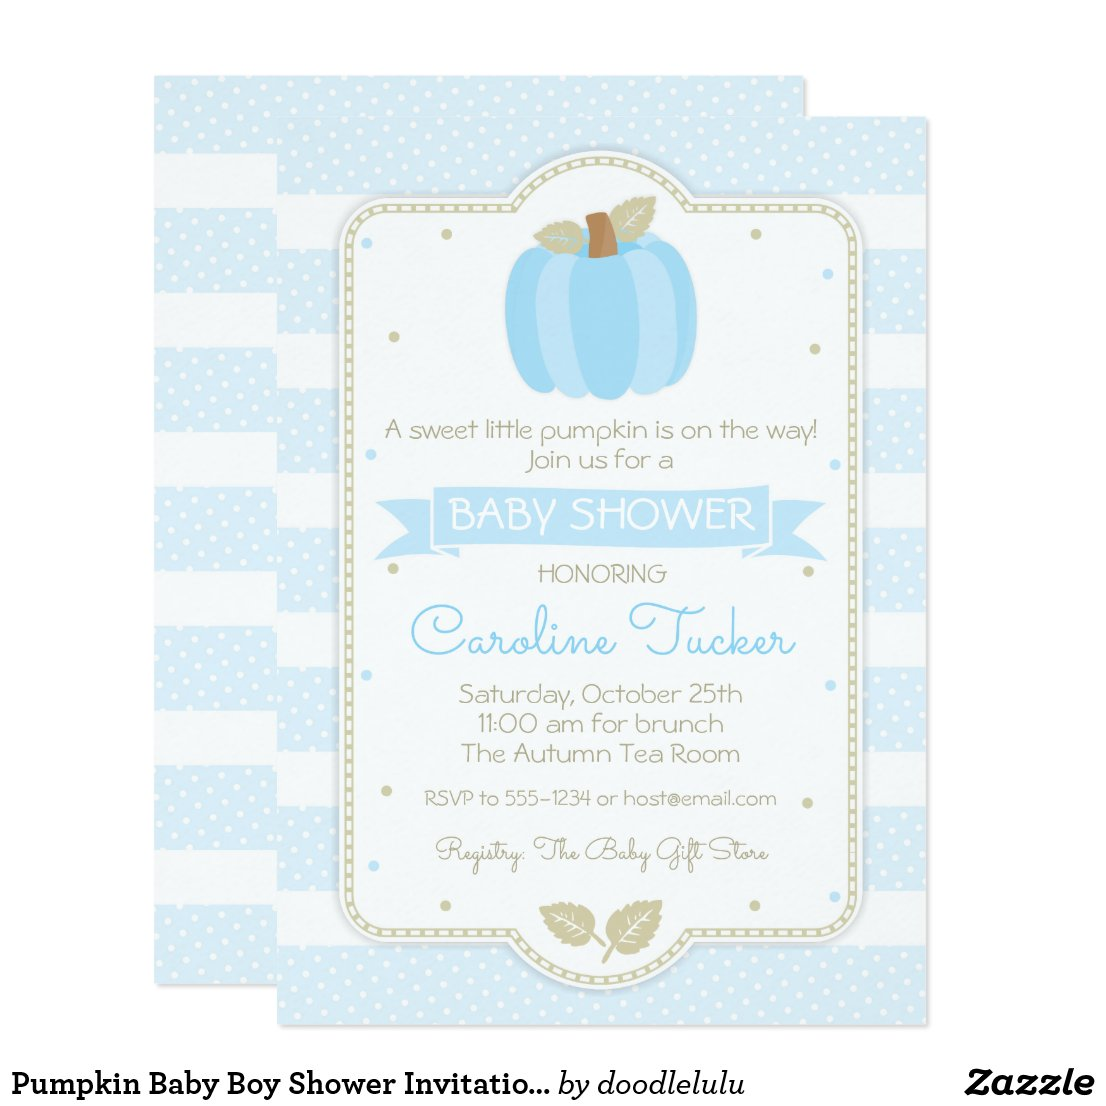 Pumpkin Baby Boy Shower Invitation - Blue Stripes